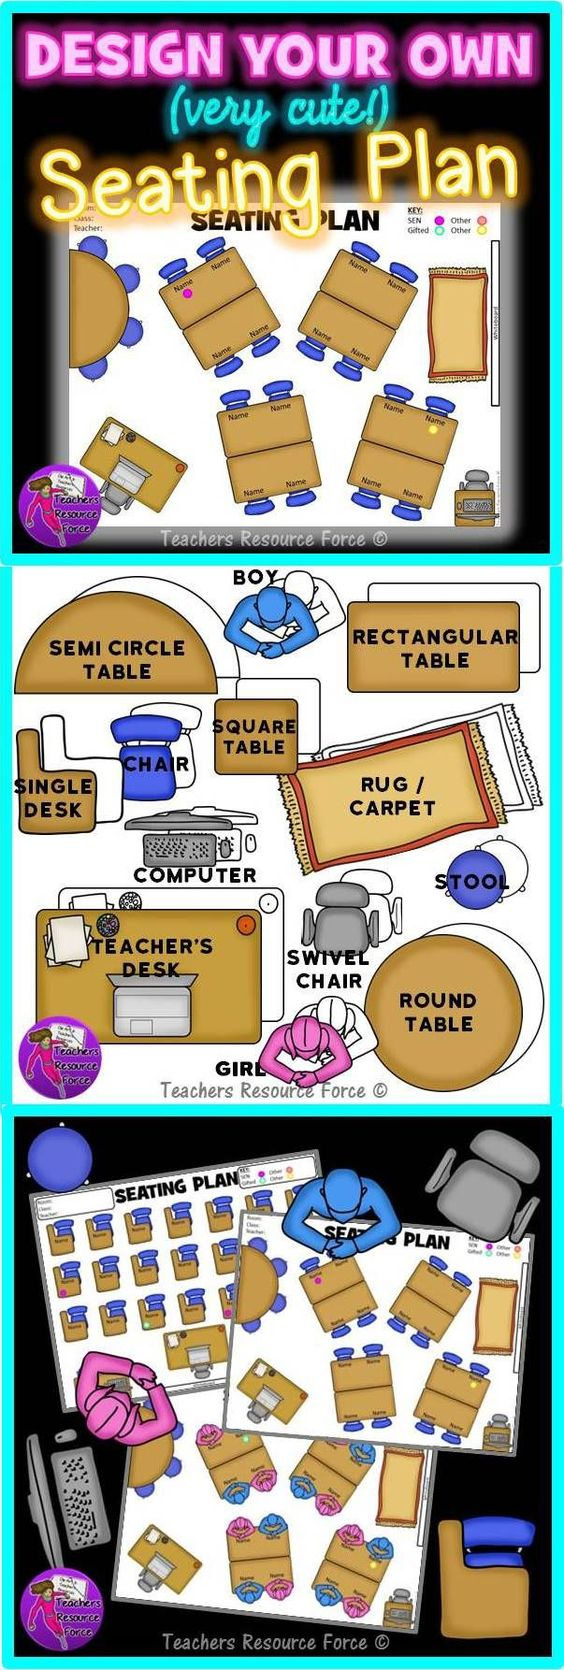 Classroom Design That Works Every Time : Seating plans charts and build your own on pinterest